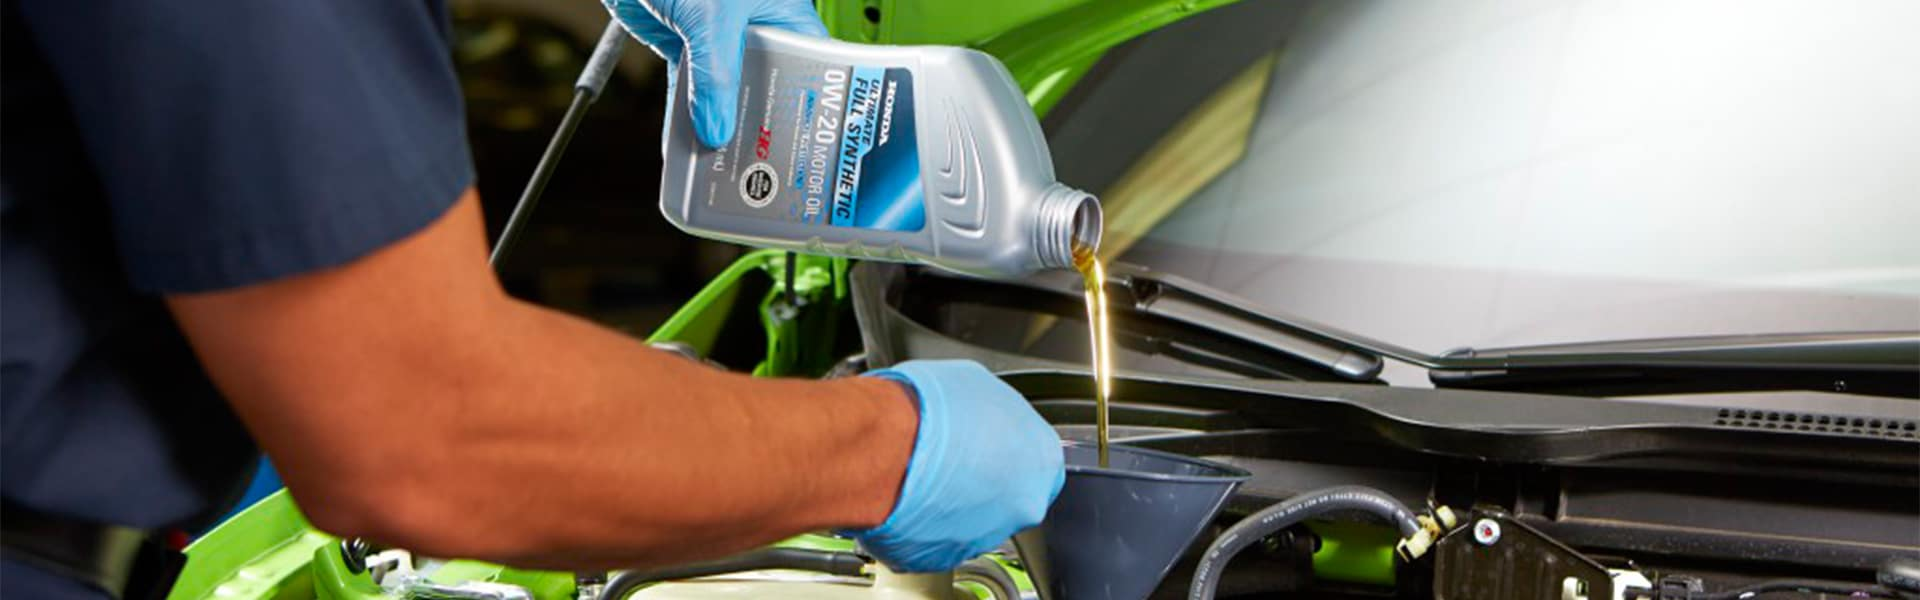 Benefits of Changing Your Honda's Oil at Washington Honda in Washington | Honda Service Advisor Pouring Genuine Honda Oil into Engine